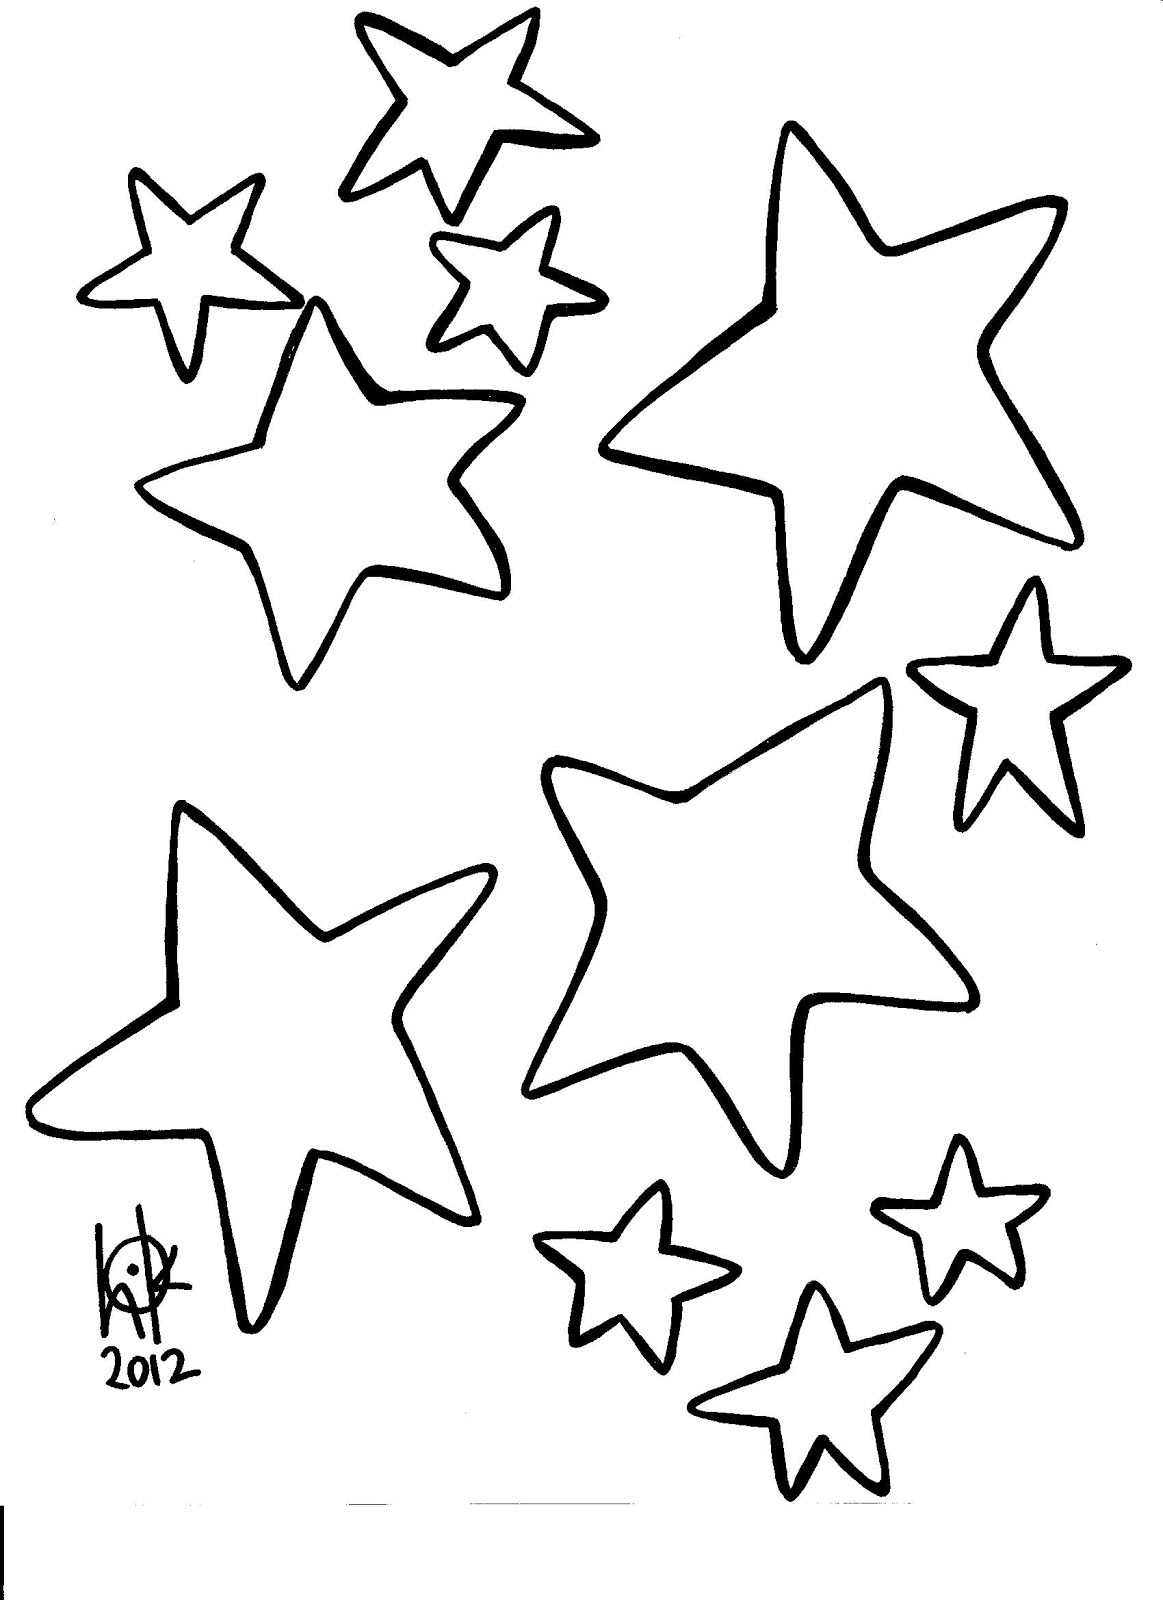 coloring pages for stars - photo#11